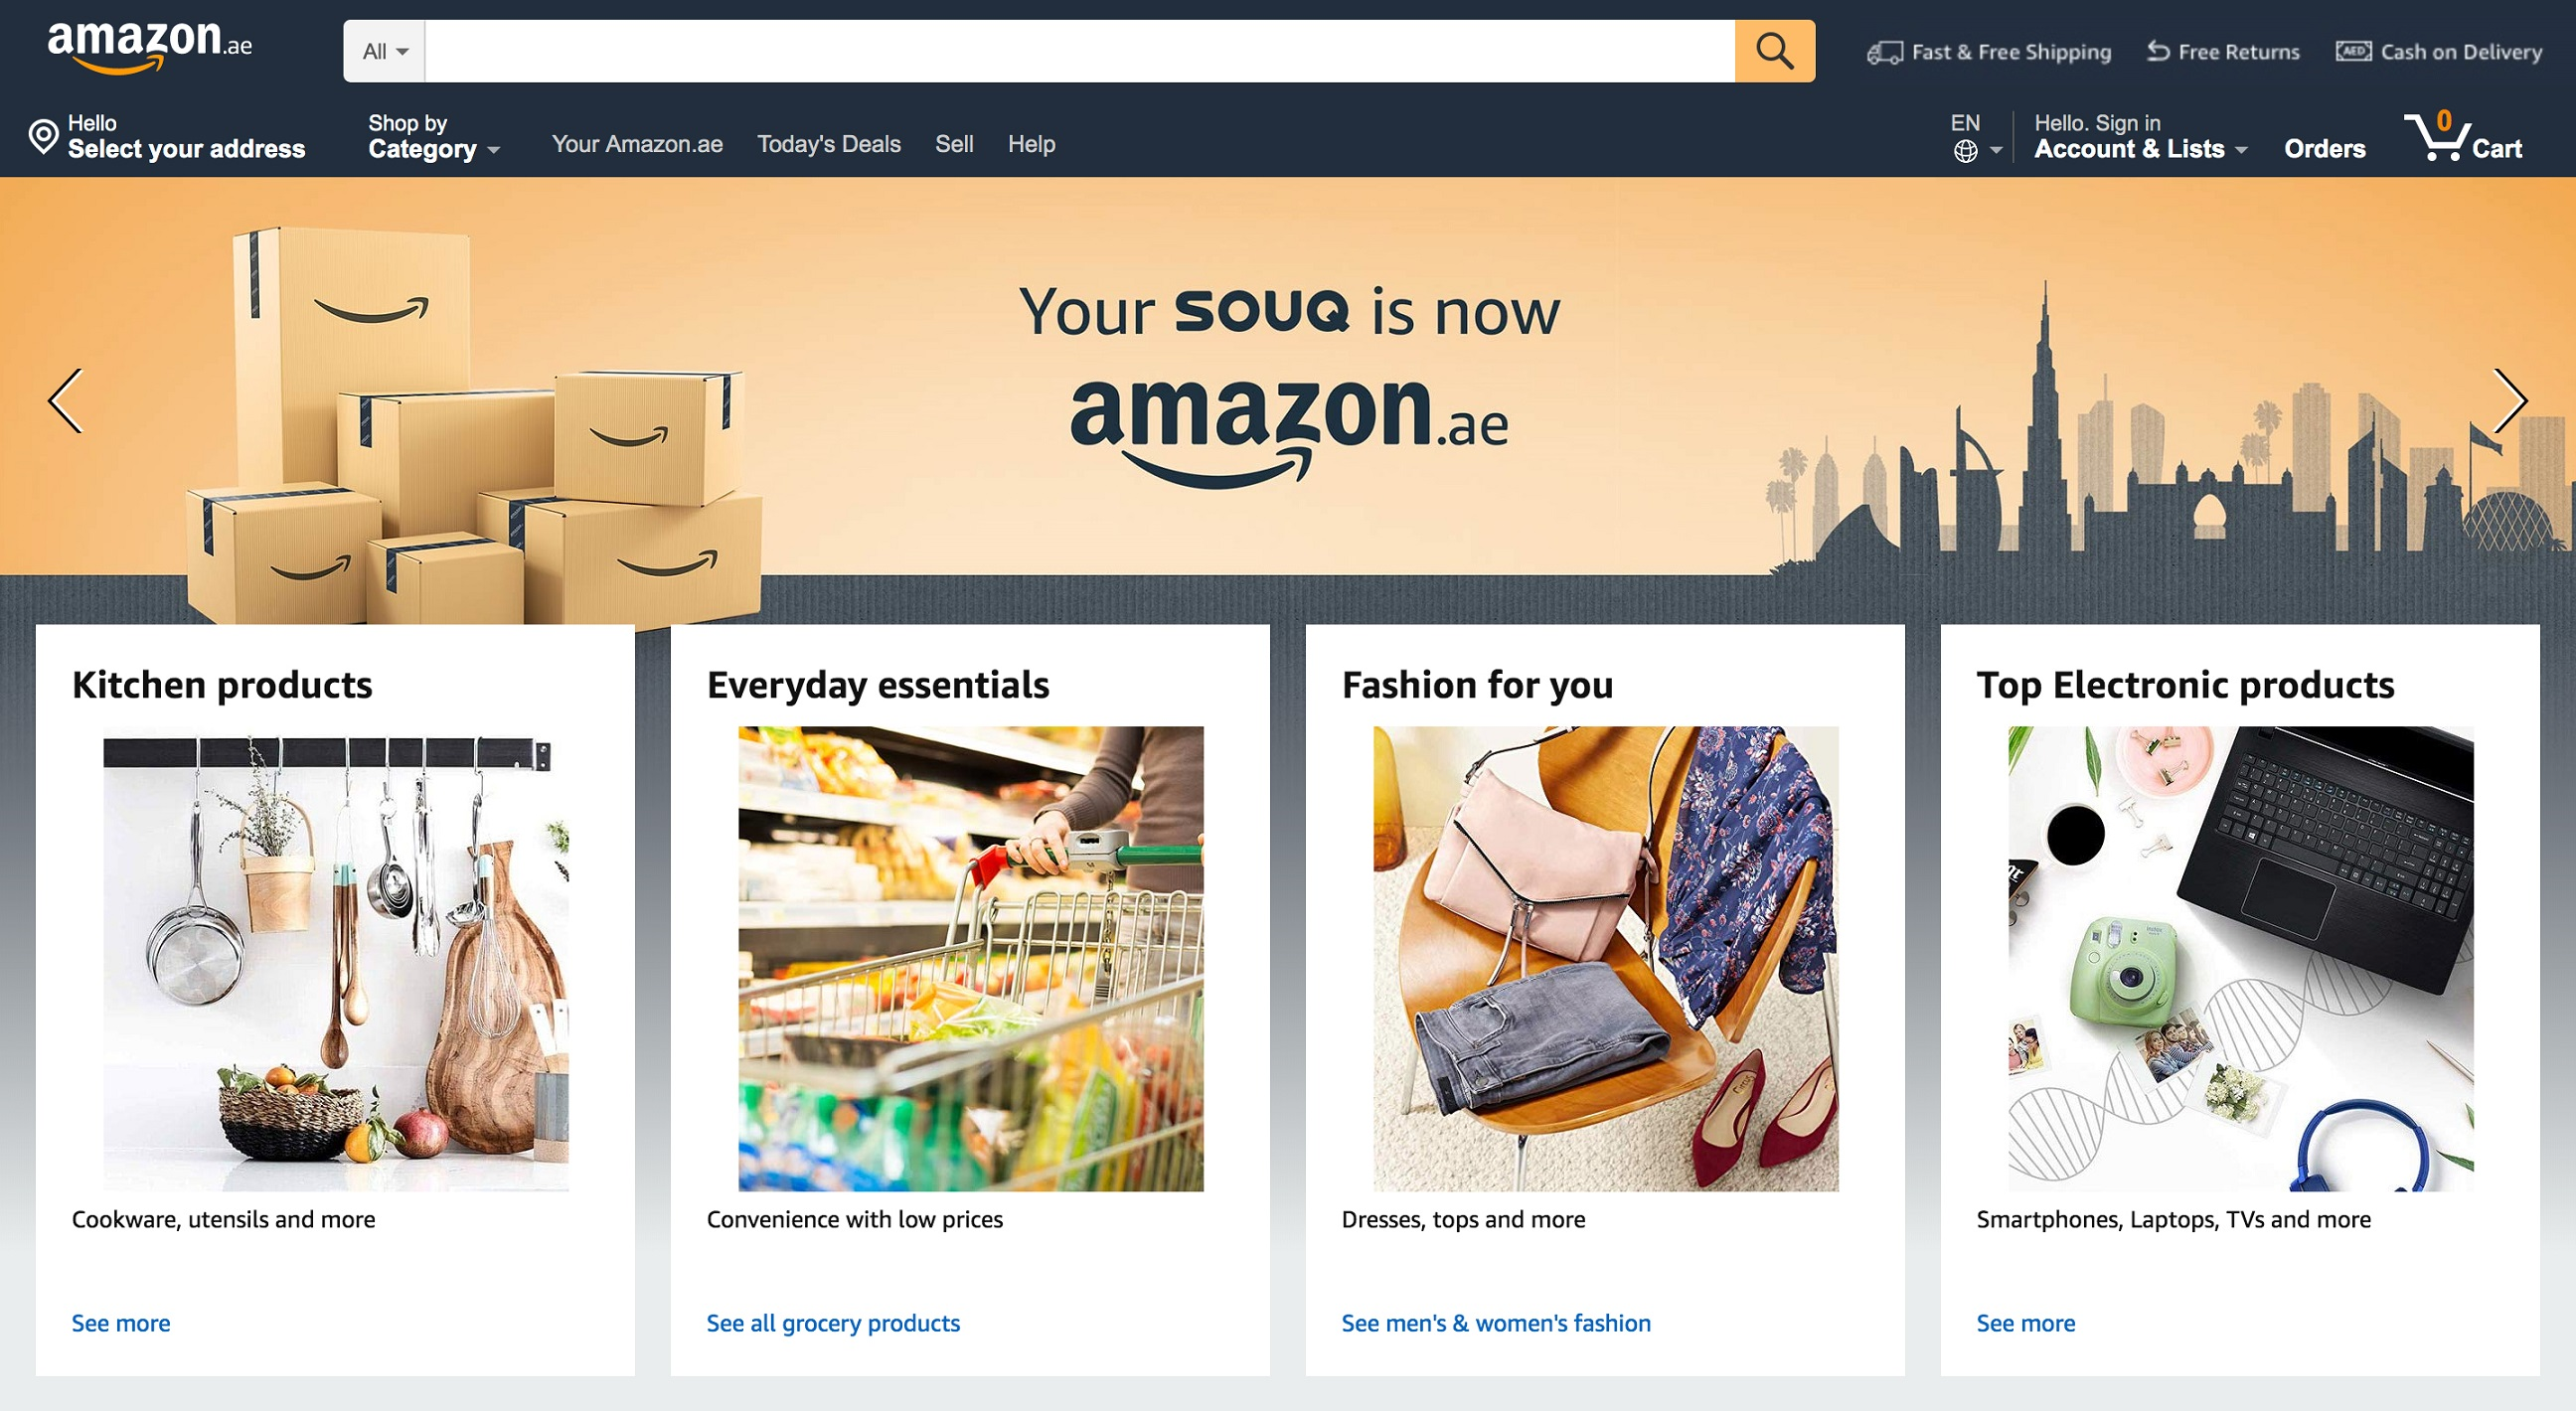 SOUQ transitions to Amazon ae - Future of retail business in middle east